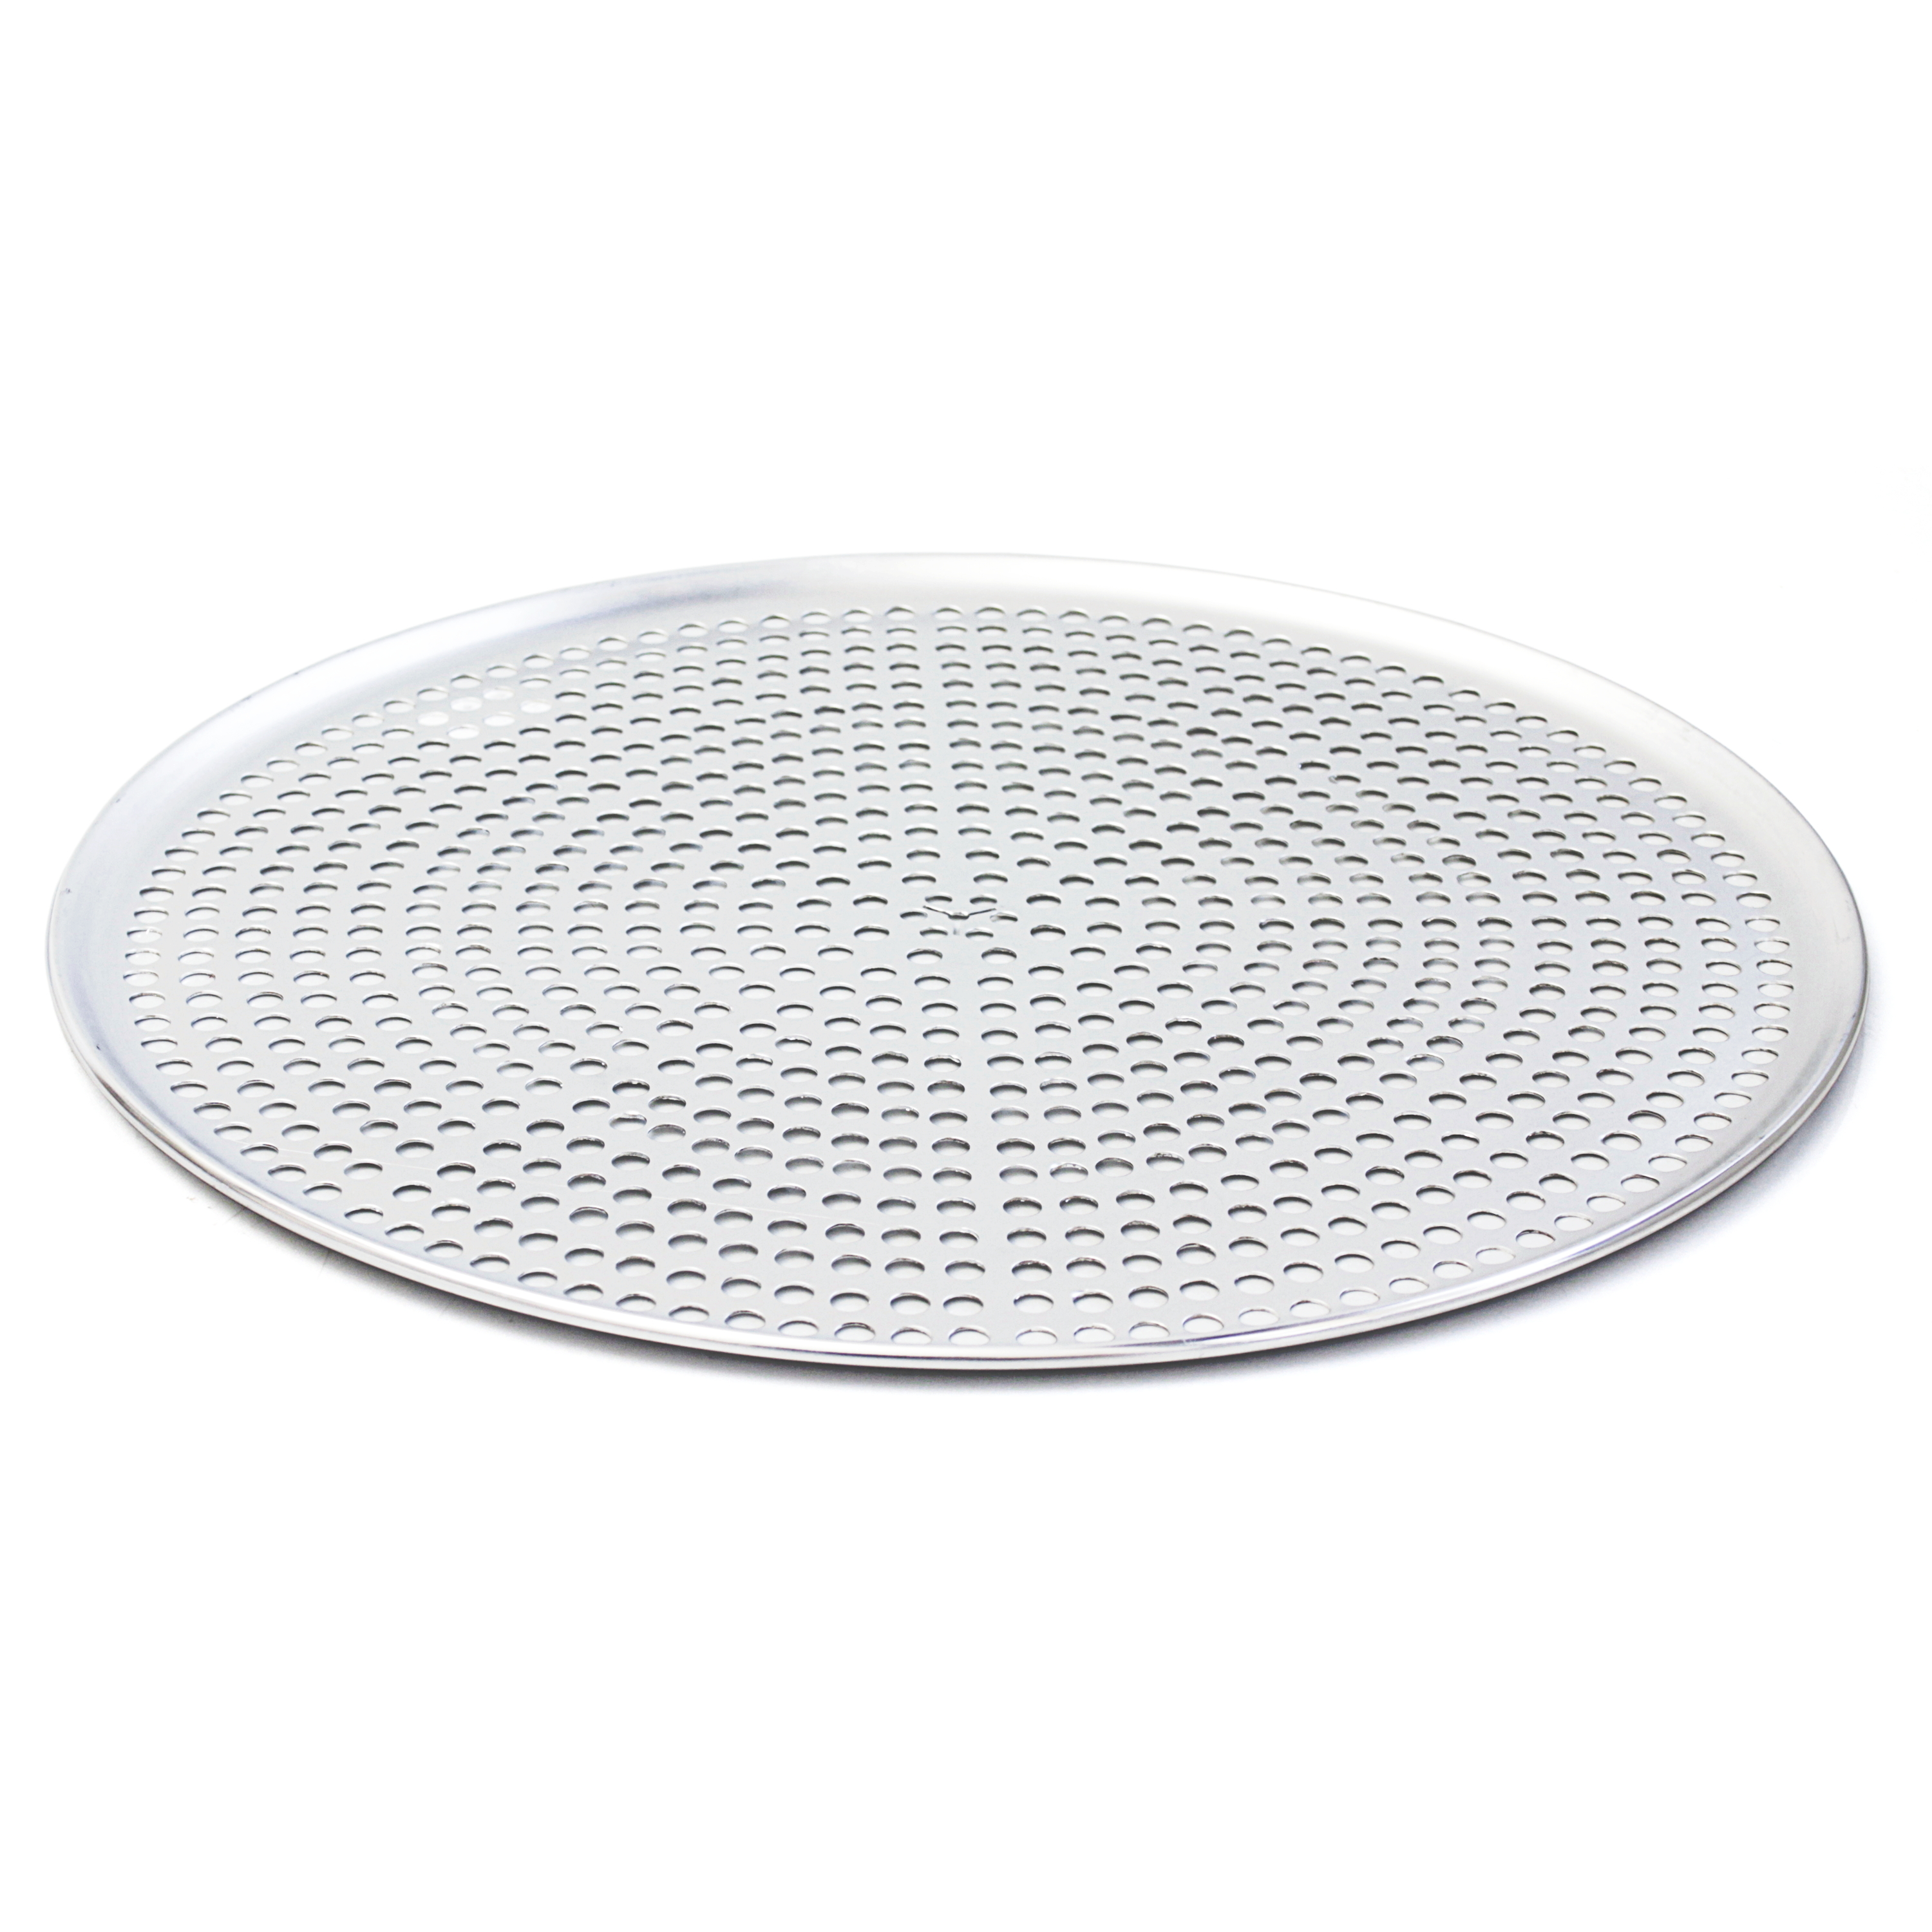 Browne Basics Aluminum Perforated Pizza Tray, 16 Inch